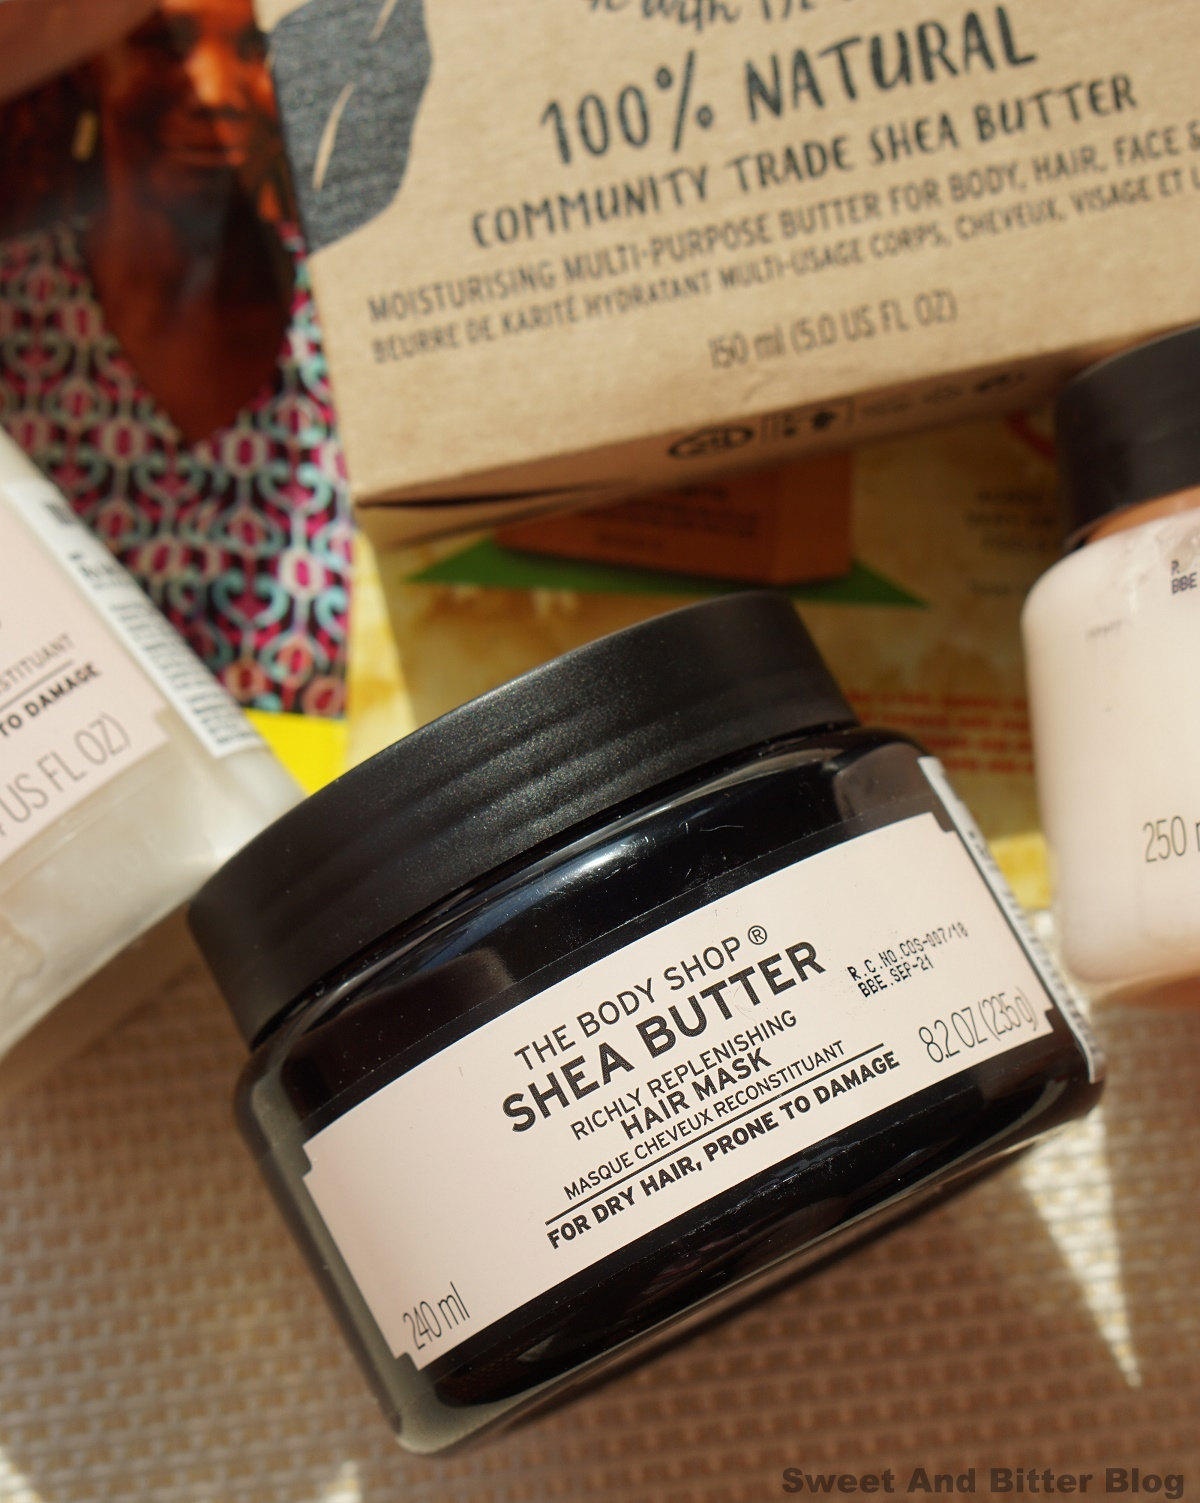 The Body Shop Shea Richly Replenishing Hair Mask Review India